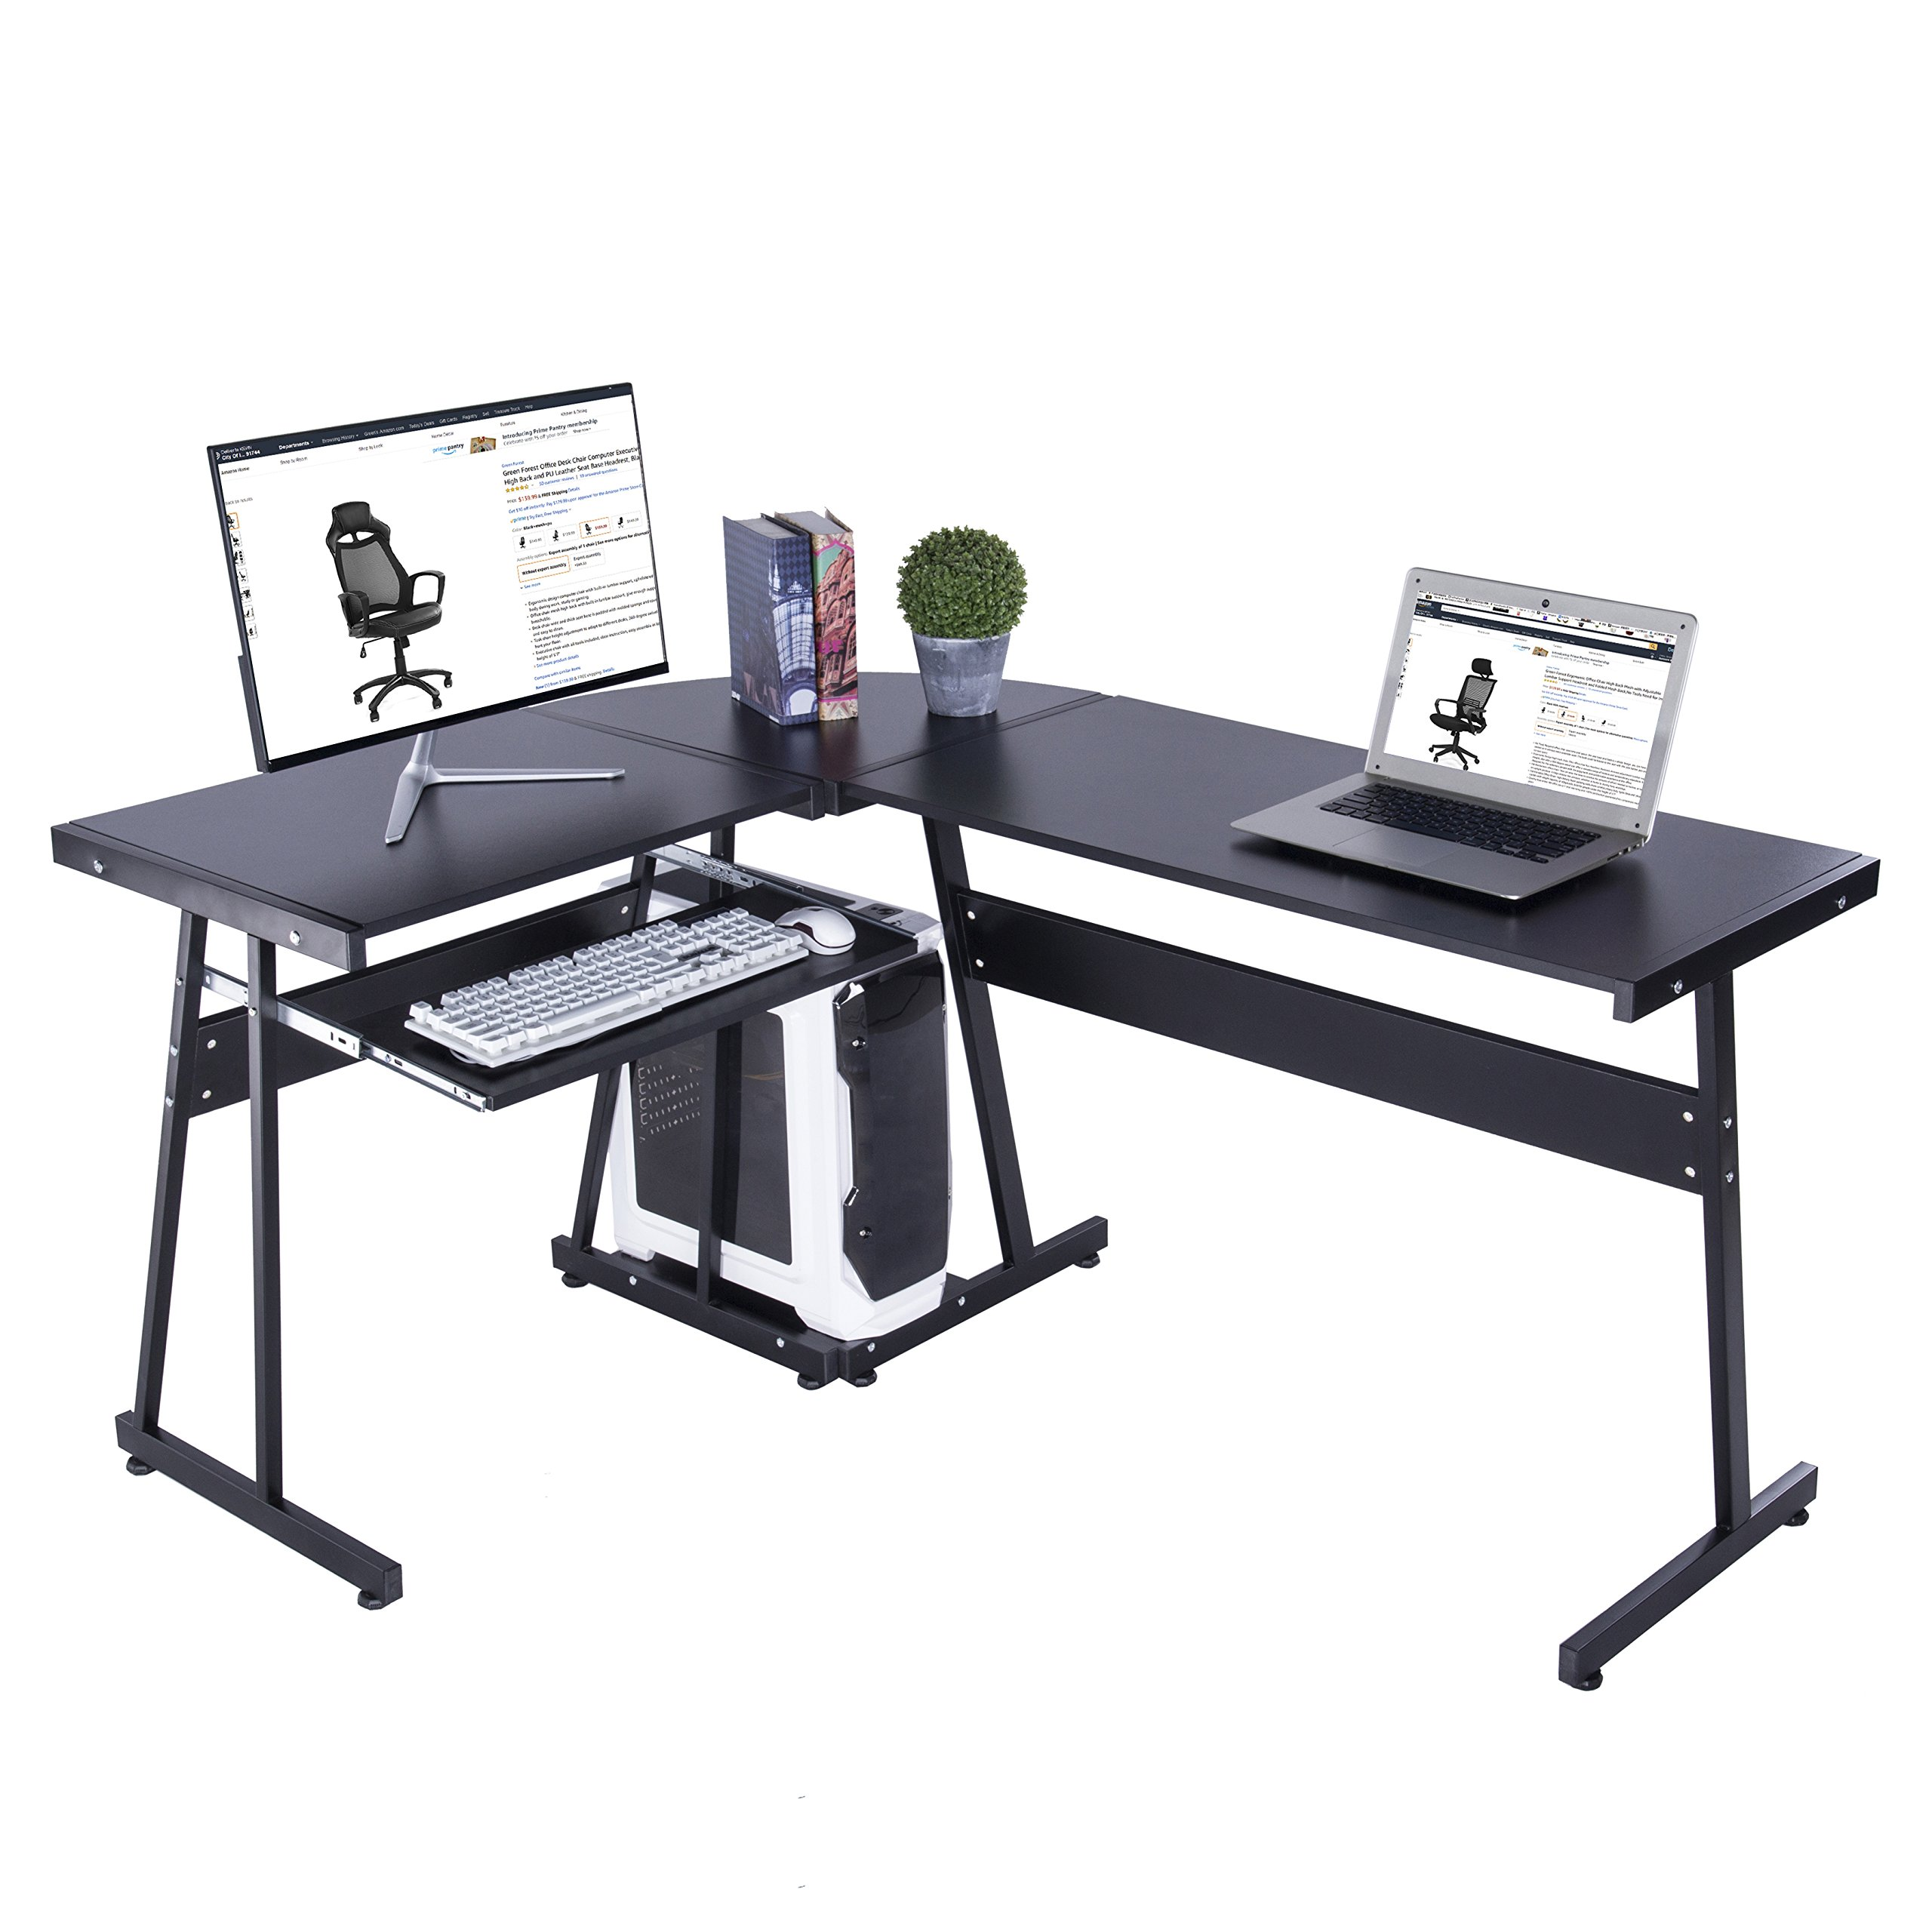 GreenForest L-Shaped Computer Desk with Keyboard Tray and CPU Stand for Home Office Gaming and Study,Black